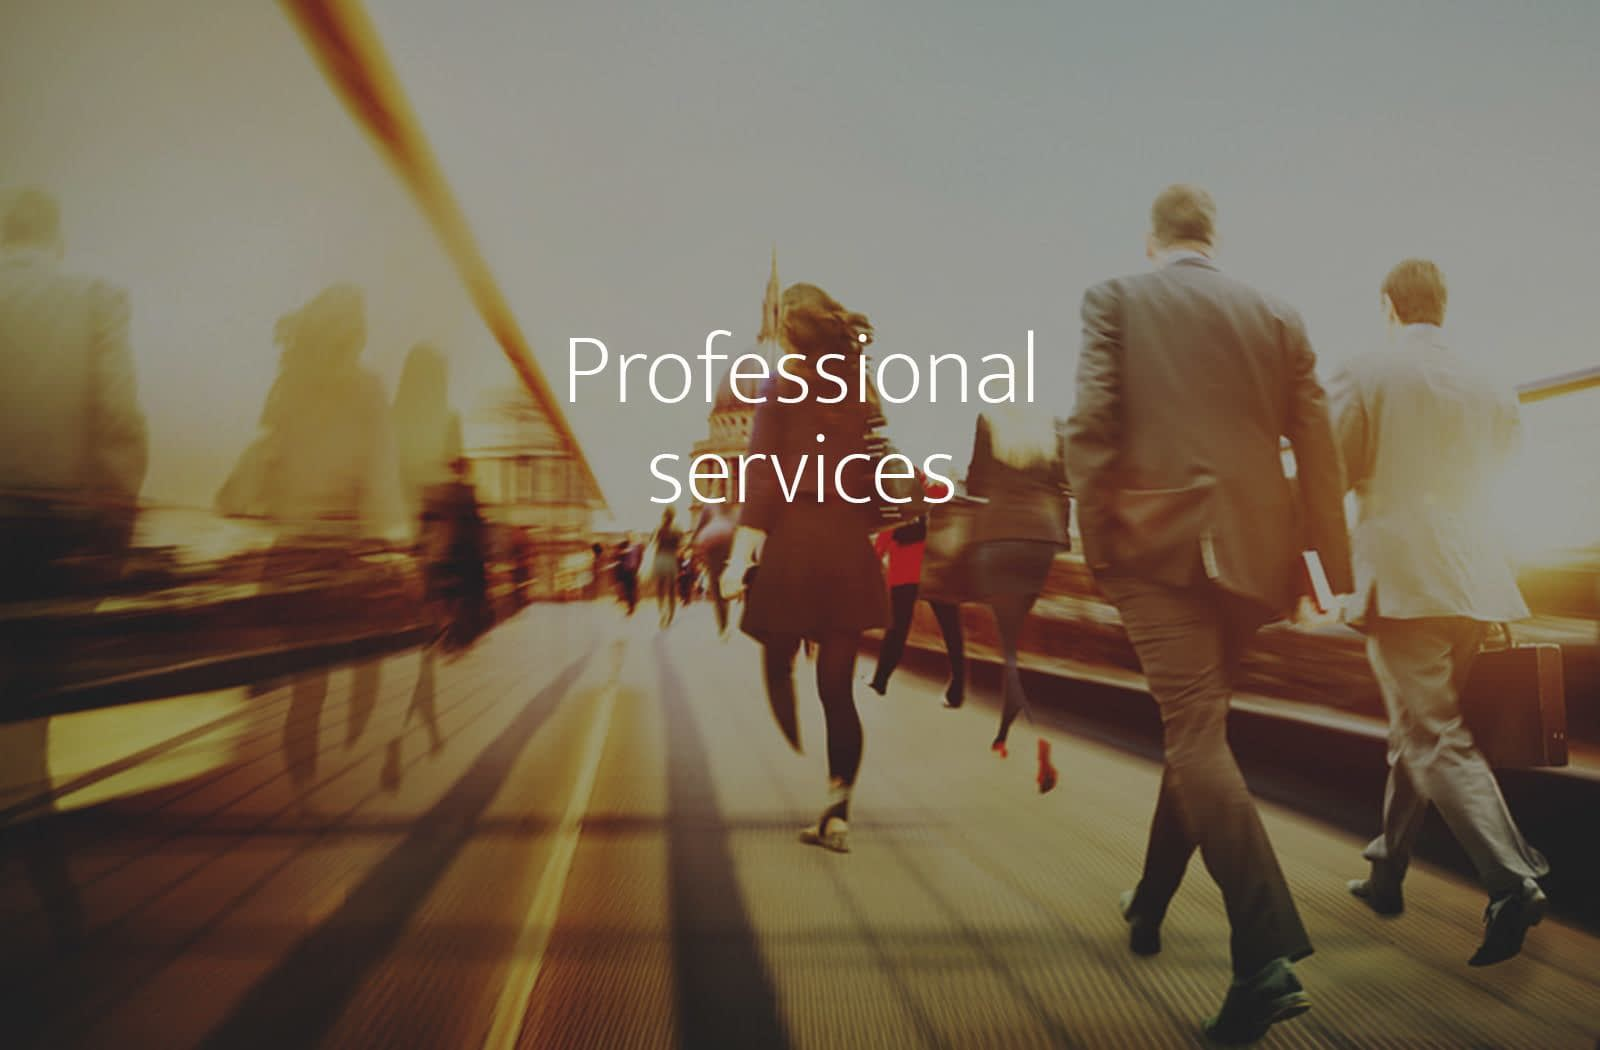 Recruitment, assessment and development for Professional Services firms